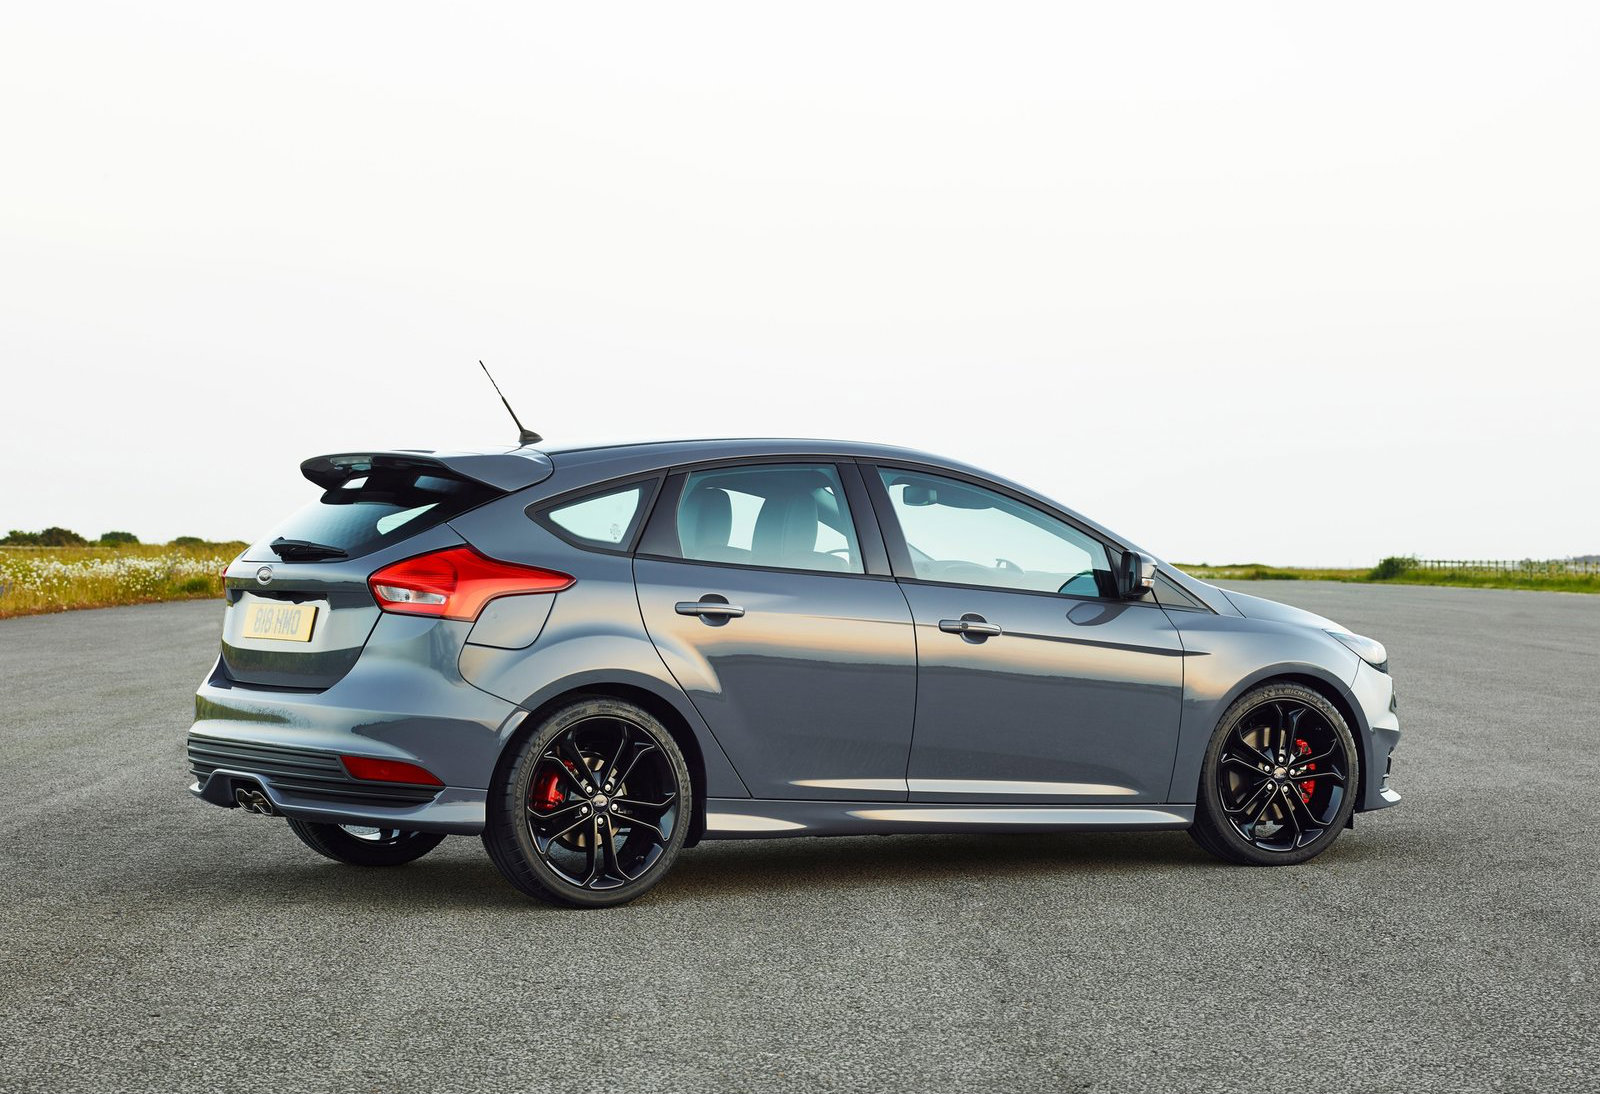 New 2015 Ford Focus ST Pricing Revealed for the UK [Photo Gallery]